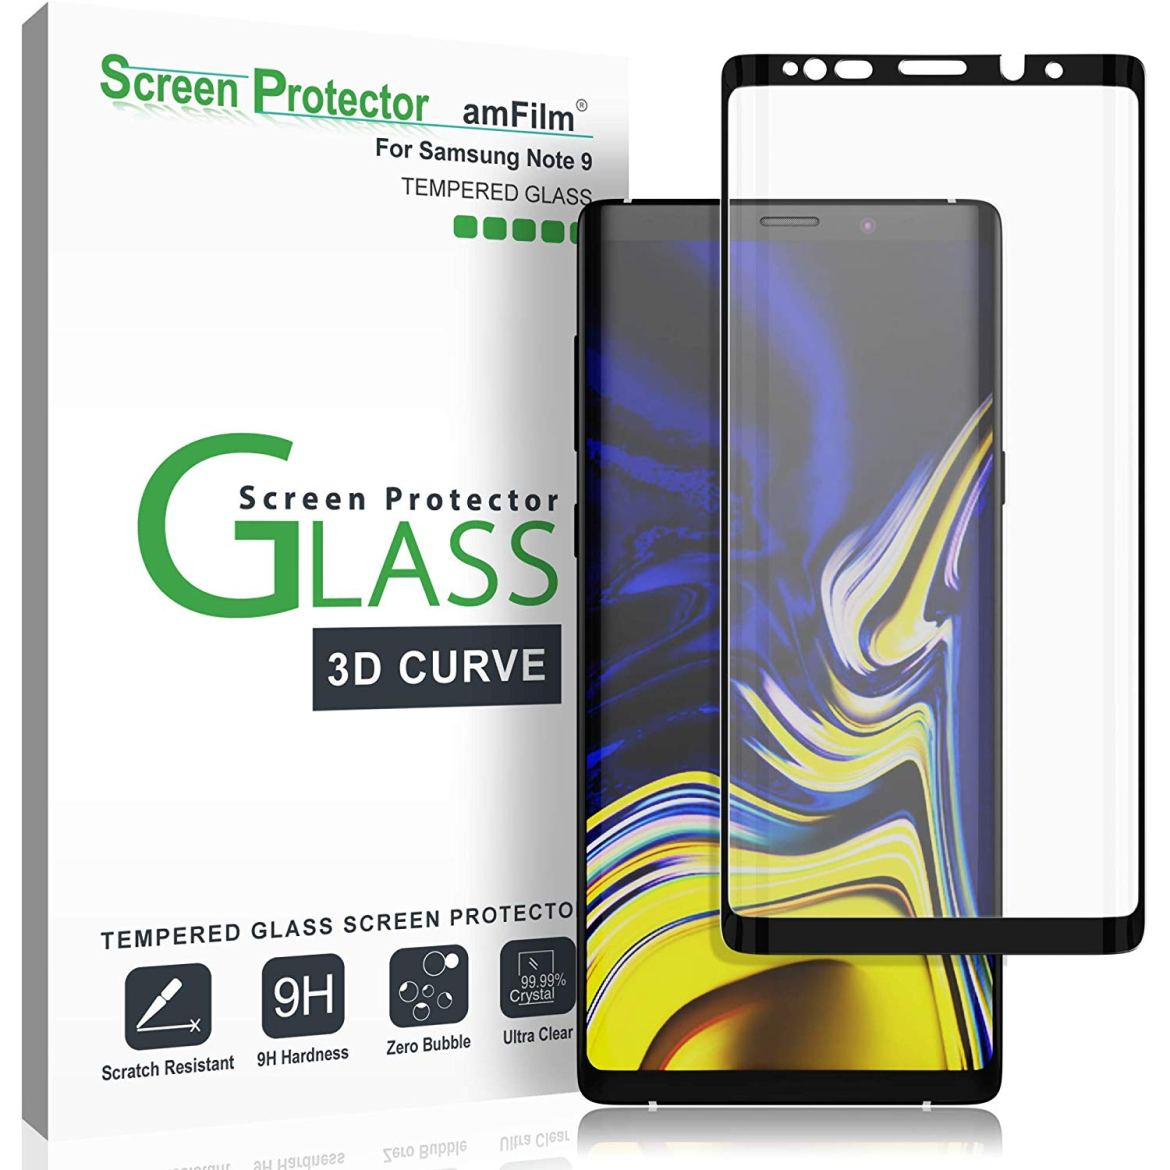 amFilm Tempered Glass Screen Protector Galaxy Note 9